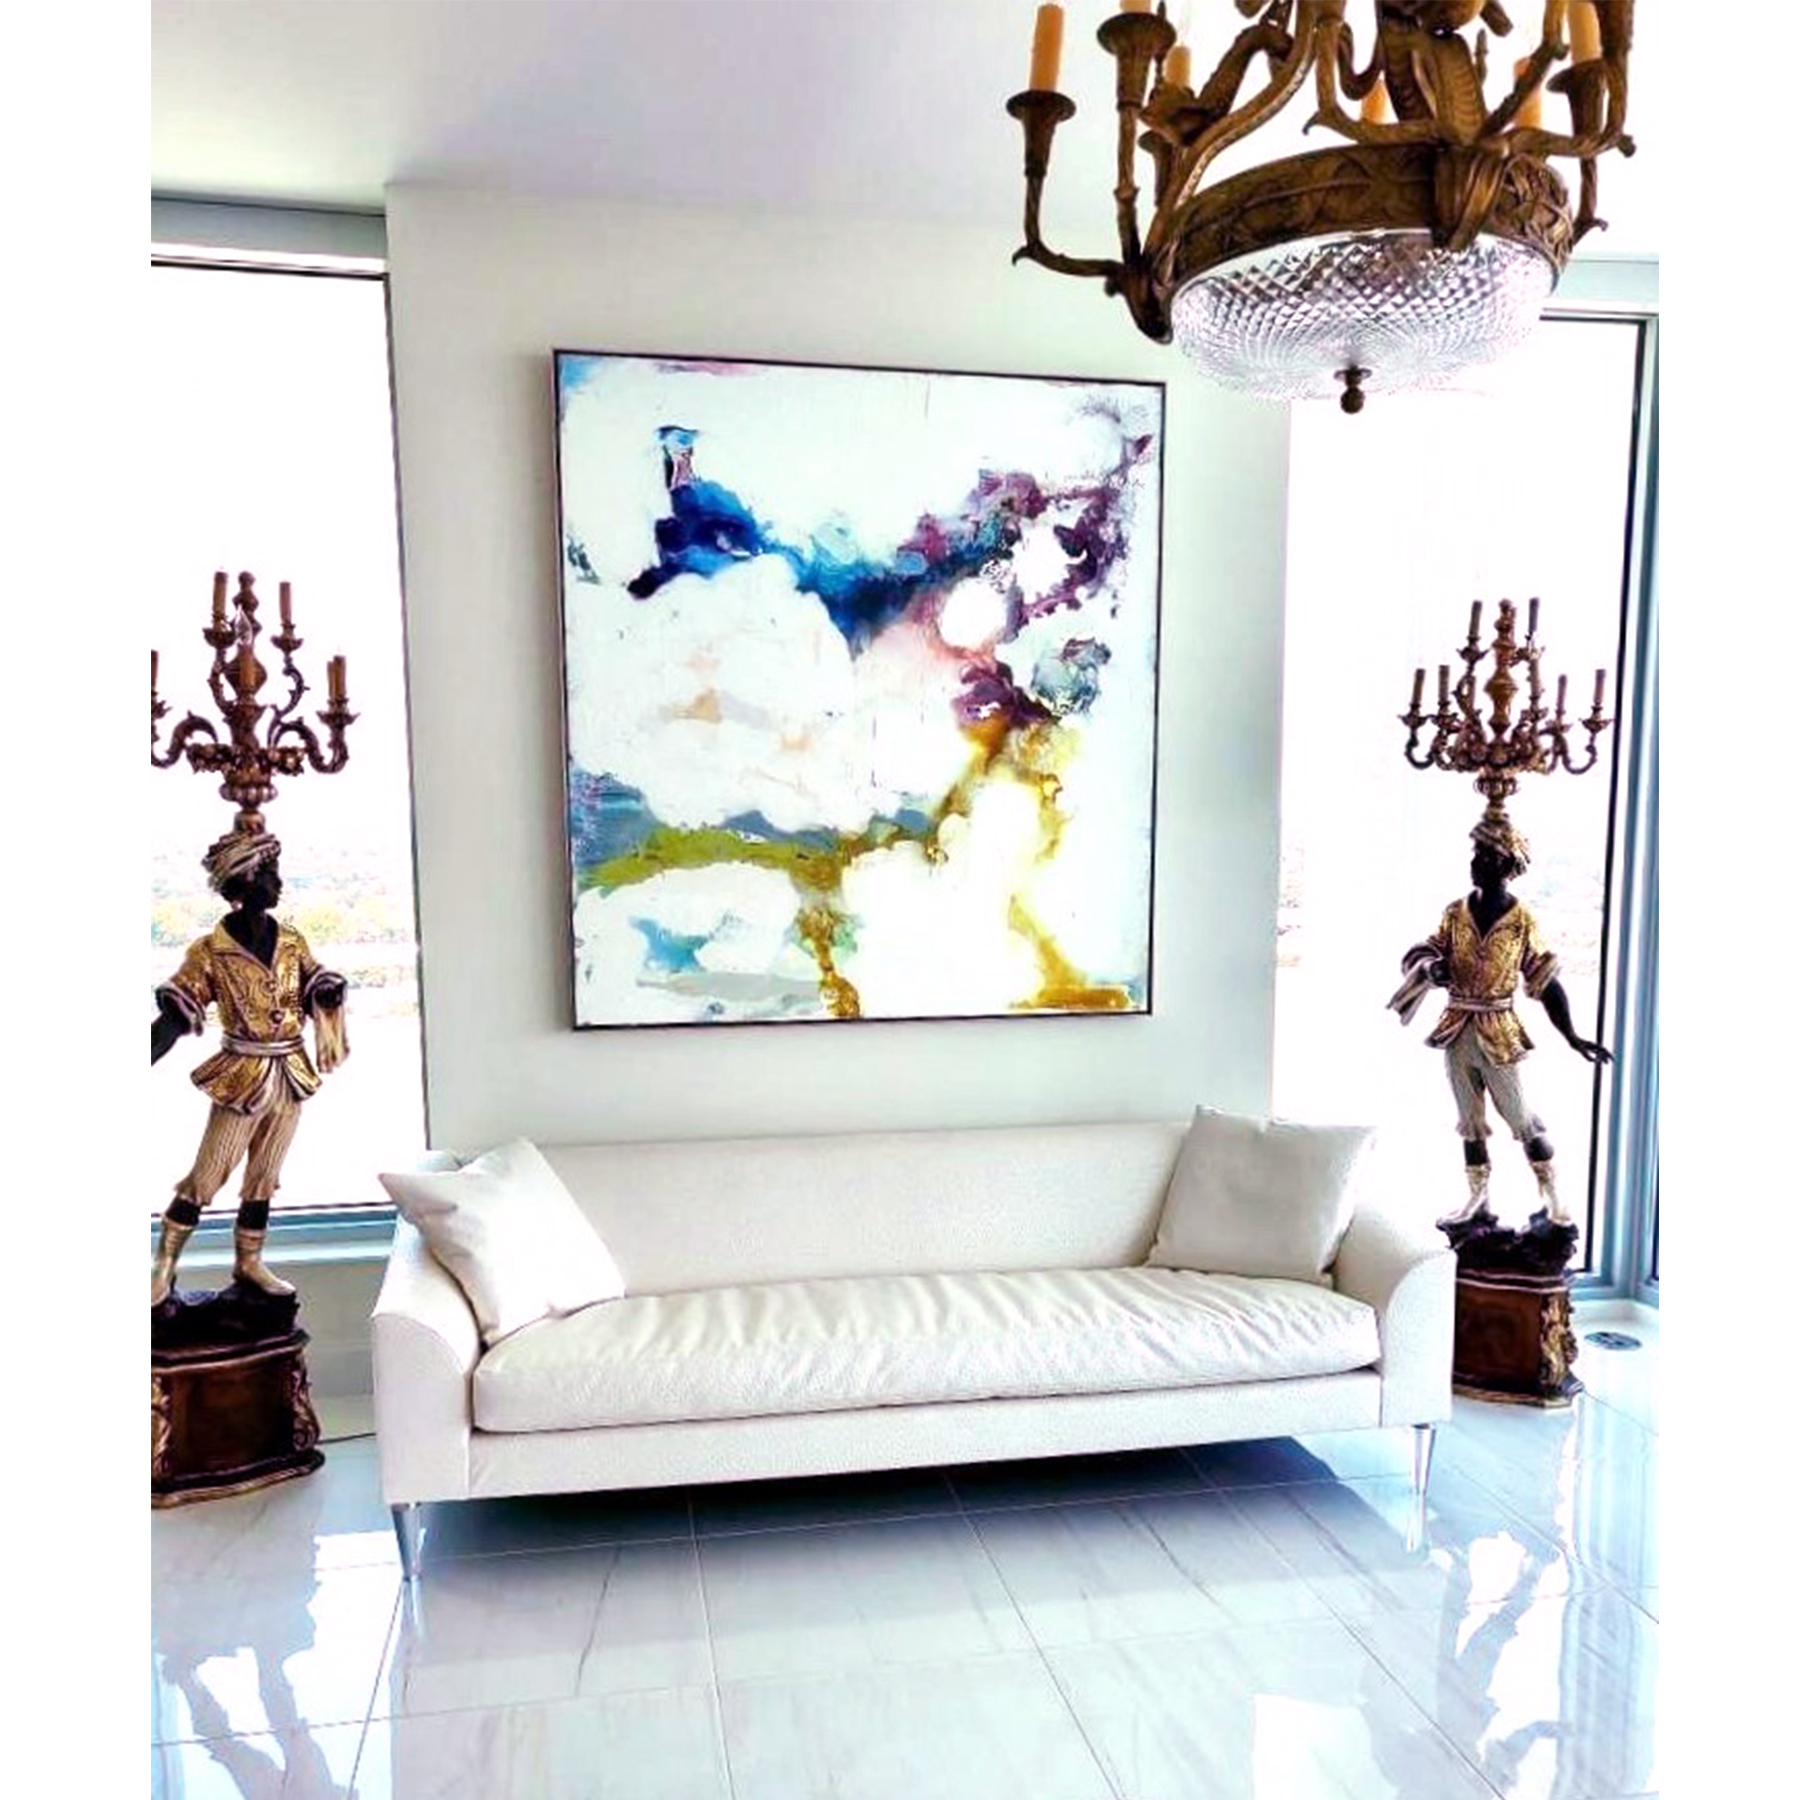 Framed abstract painting installed in a living room